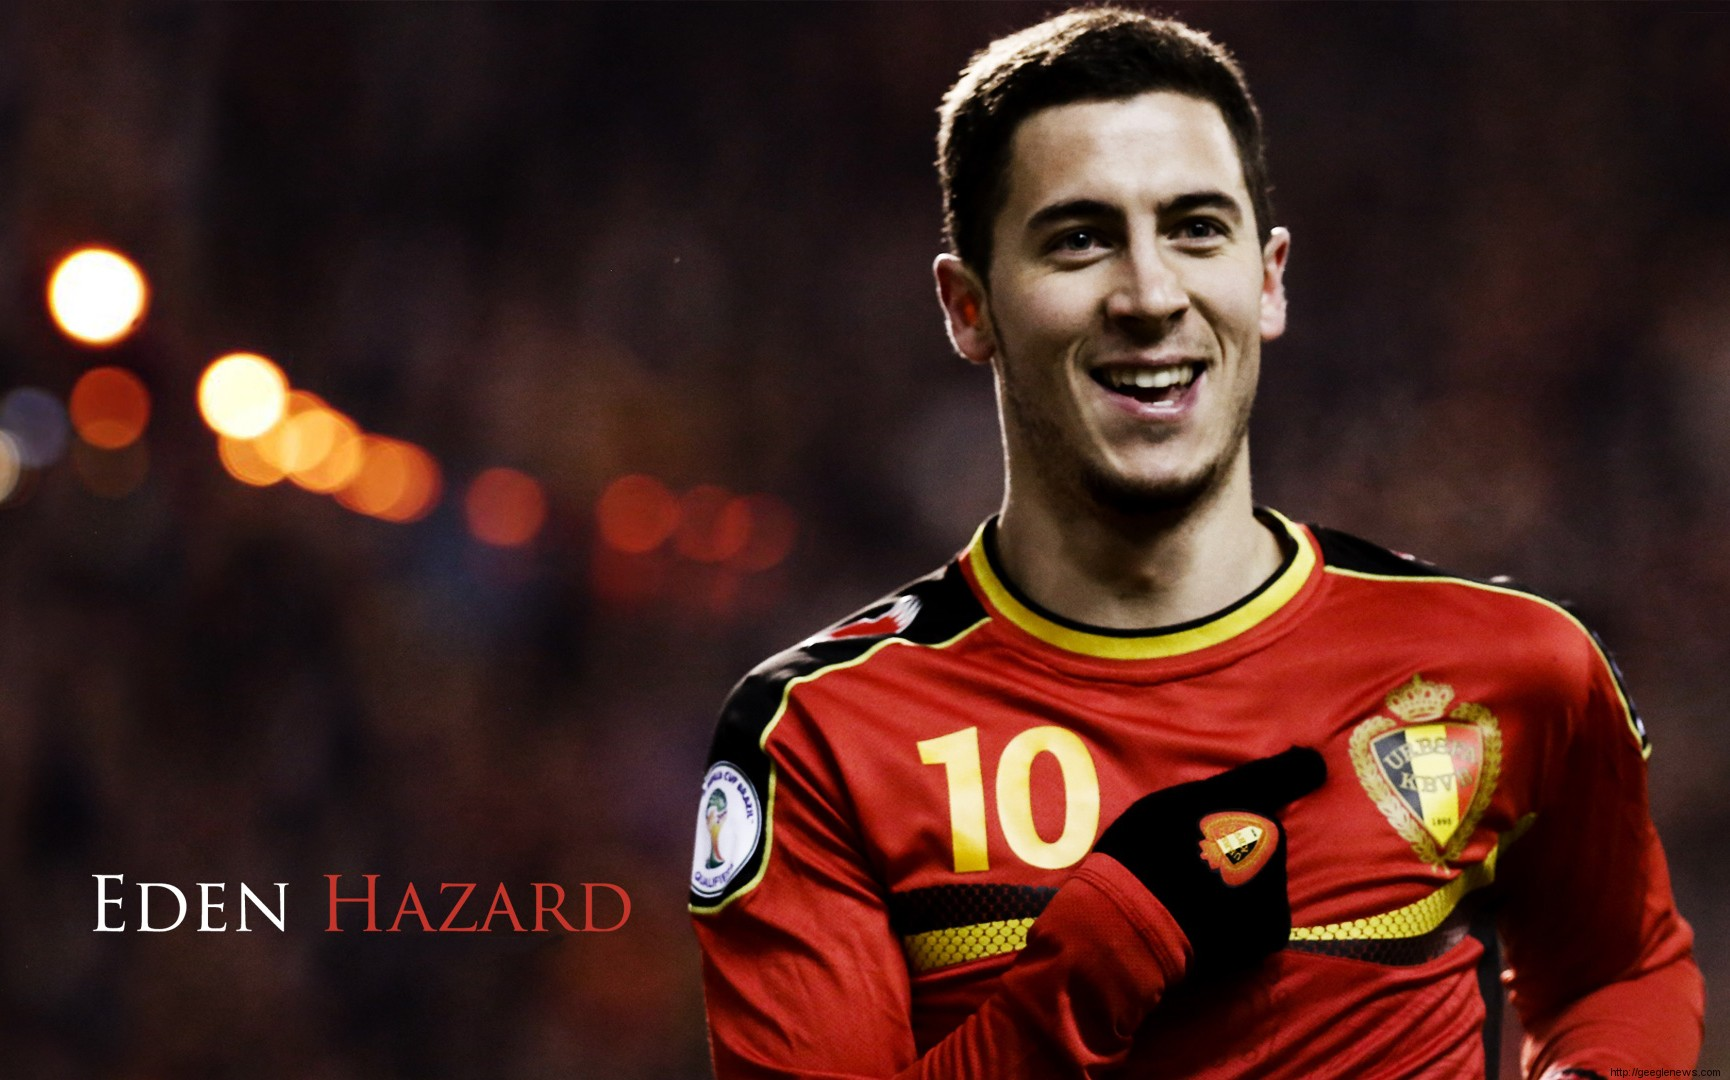 Cool Video Game Wallpapers Hd Eden Hazard Hd Pics Geegle News